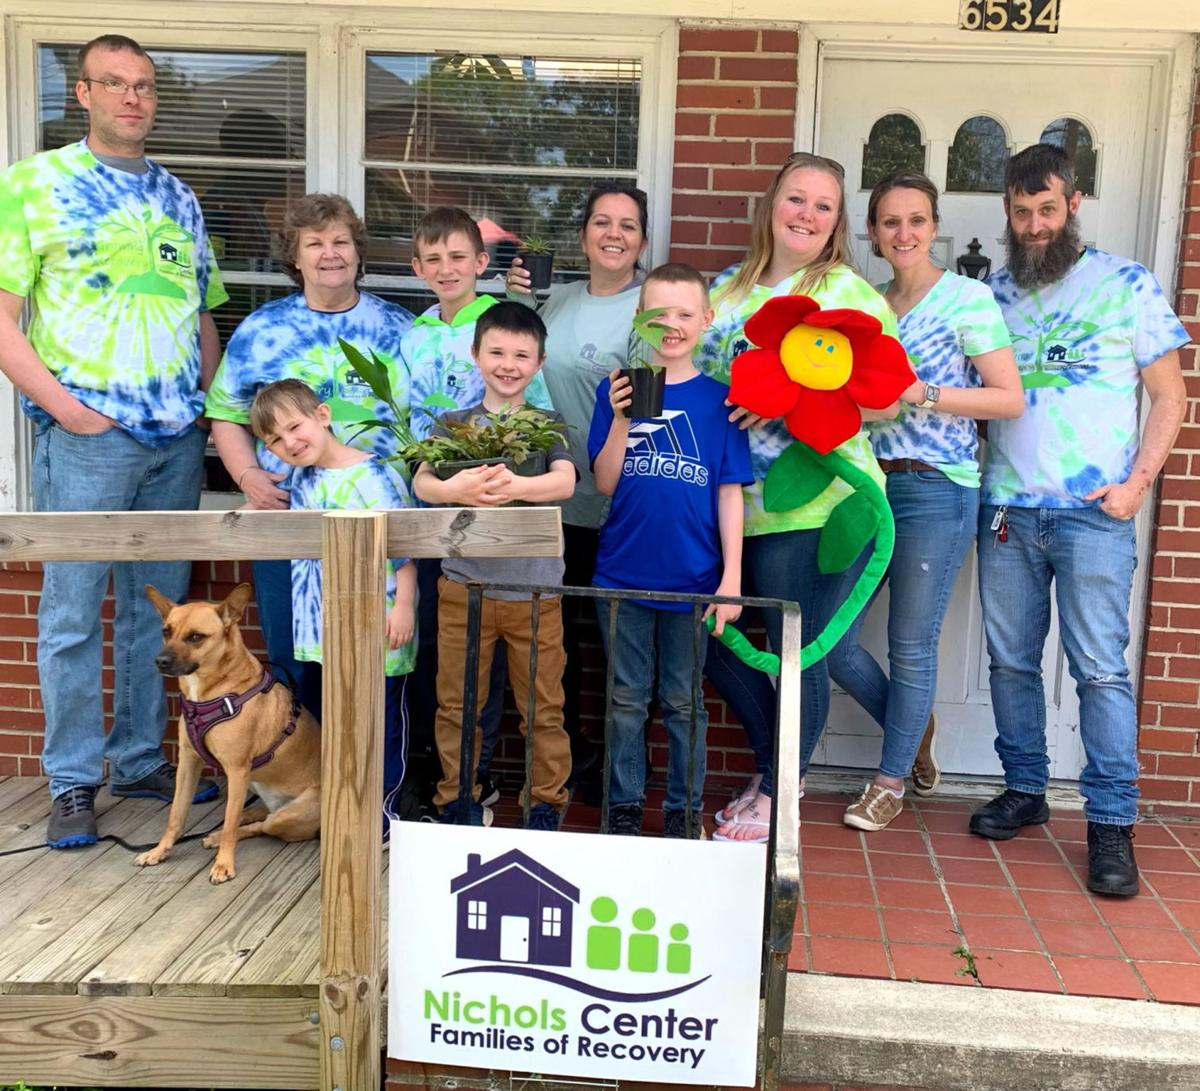 Nichols Center starts plant shop; Funds raised to help support recovery efforts